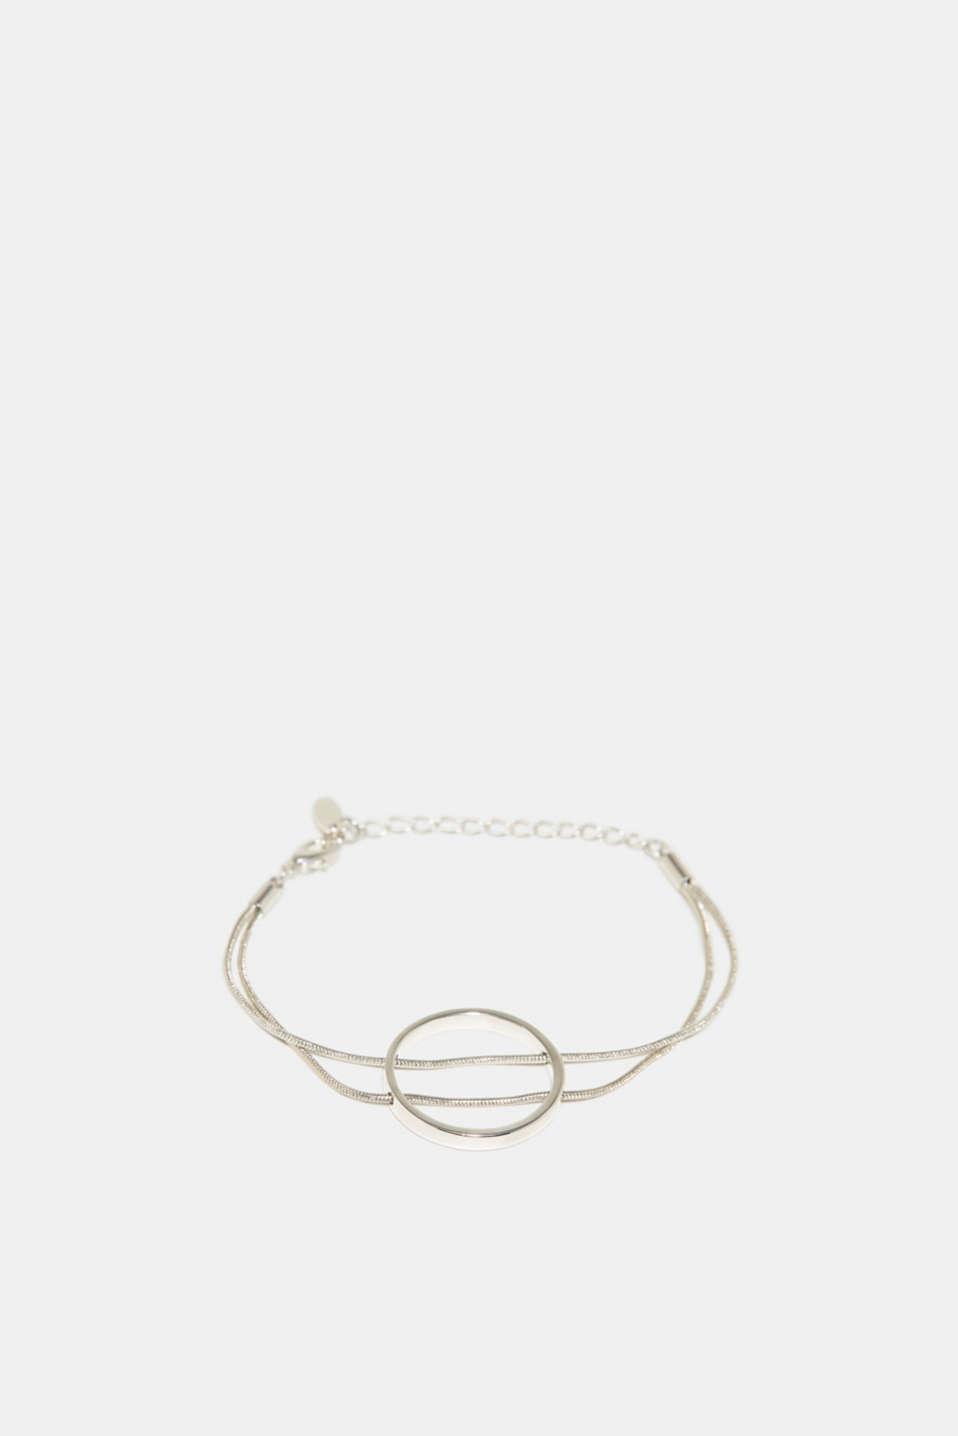 This two-strand bracelet in shiny metal is a real head-turner thanks to the circular pendant.